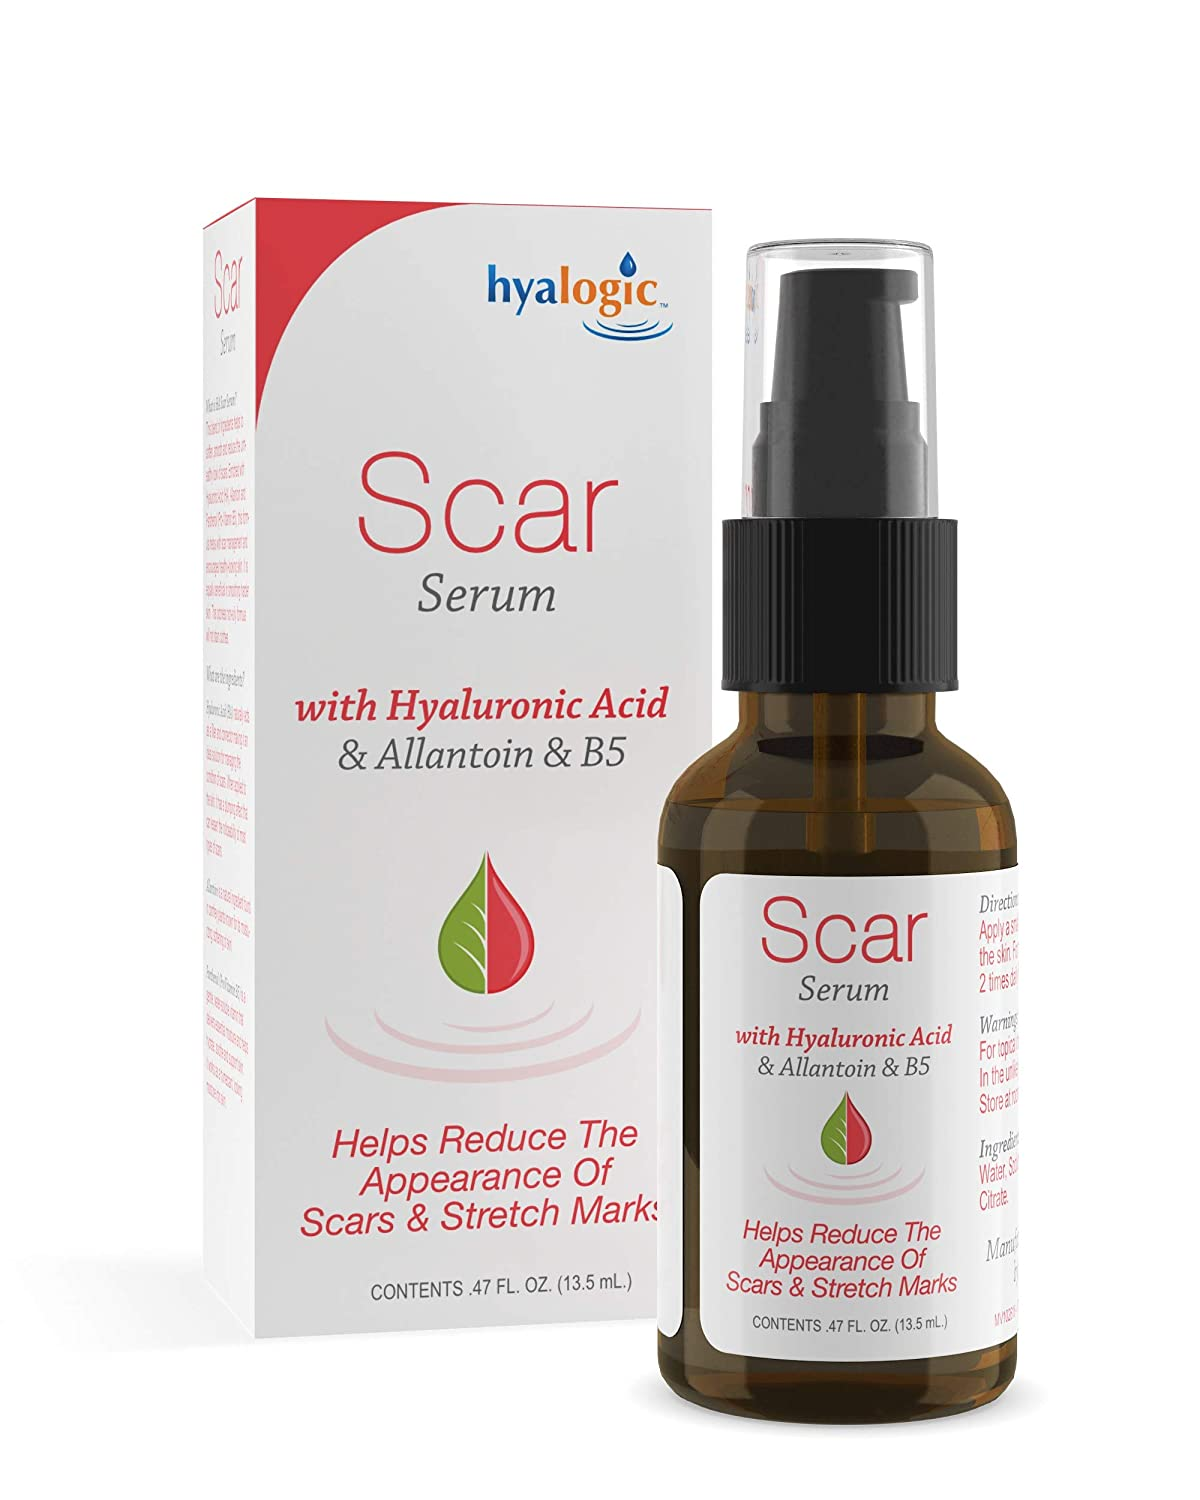 Hyalogic Scar Serum for Body–w/Hyaluronic Acid, Allantoin & B5 Panthenol—Cruelty-Free, Non-Oily, Odorless—Reduces The Appearance of Scars & Stretch Marks (0.47 fl. oz.)